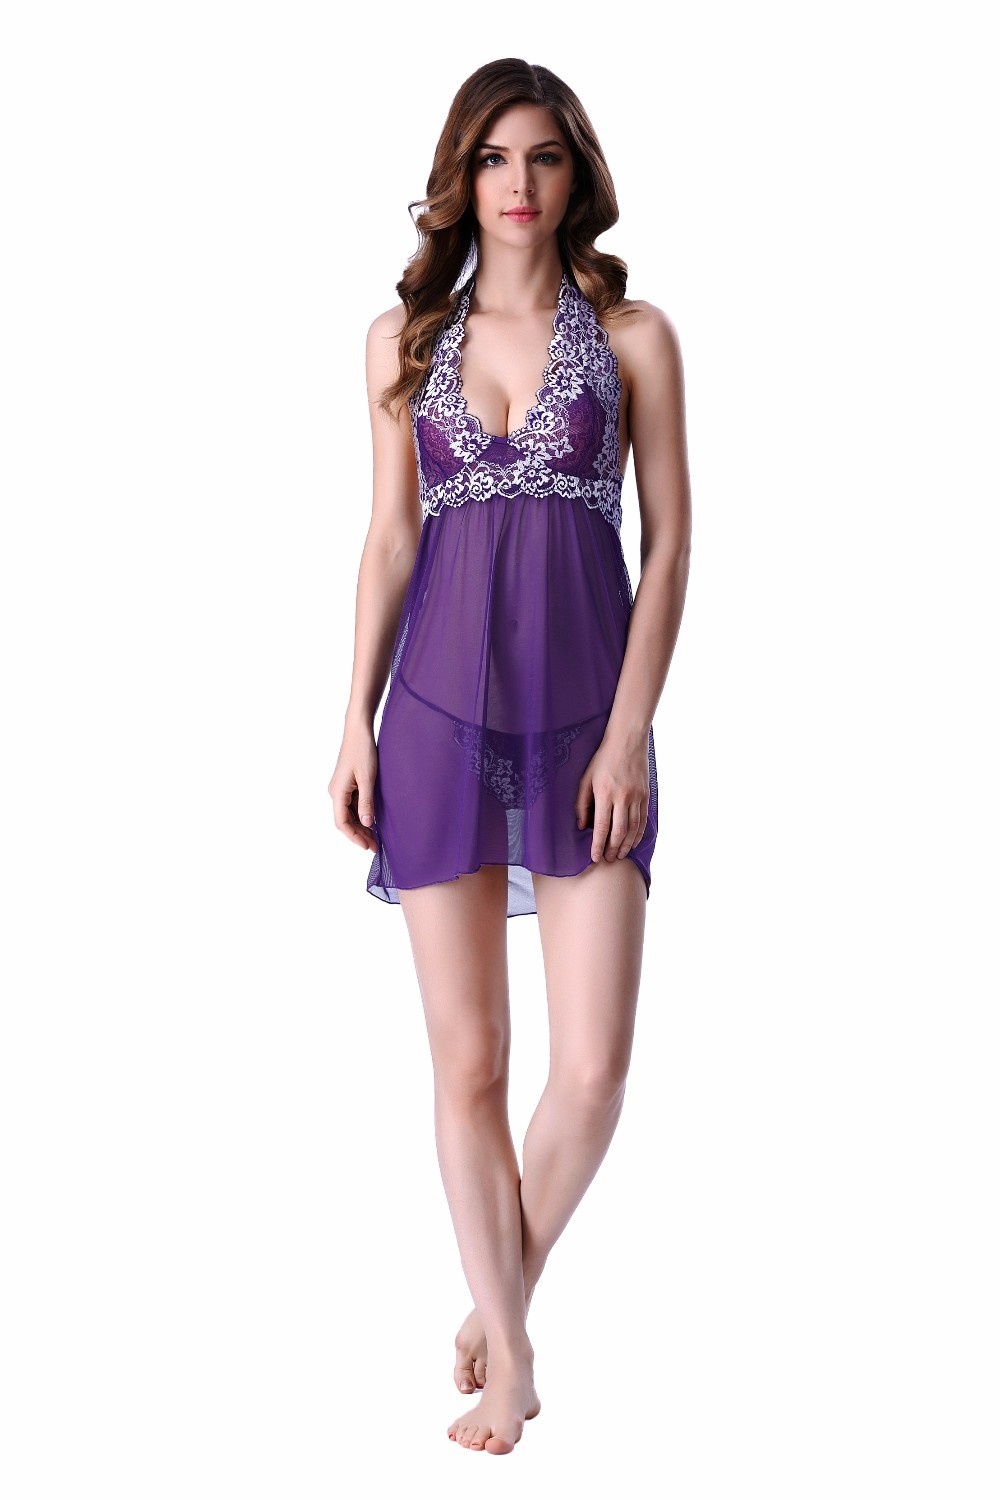 ... High-Quality-Blue-Embroidery-Sexy-Nightwear-Backless-Summer- ... f91a2c288